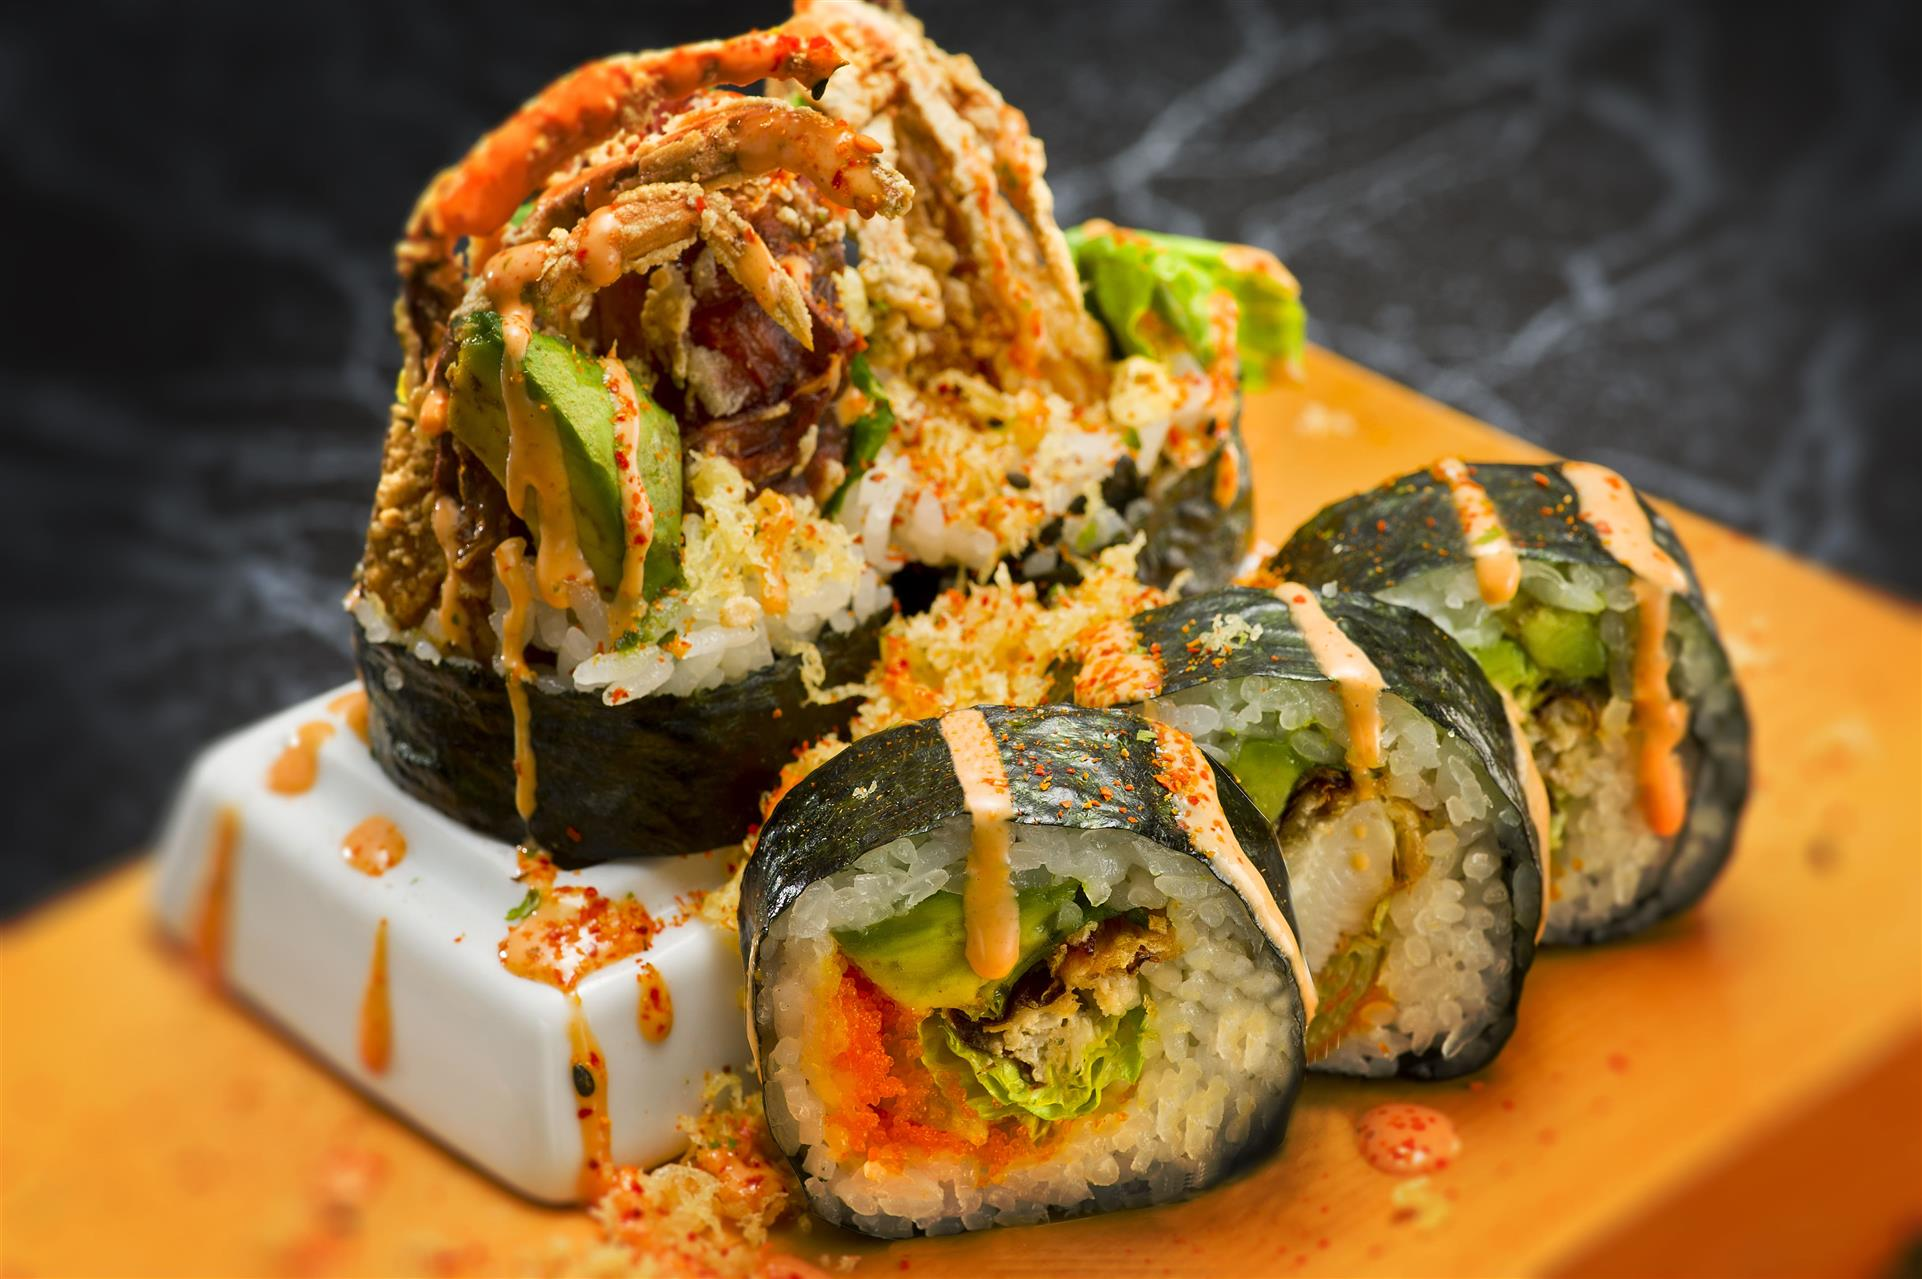 sushi roll with crab tempura, avocado, and spicy mayo